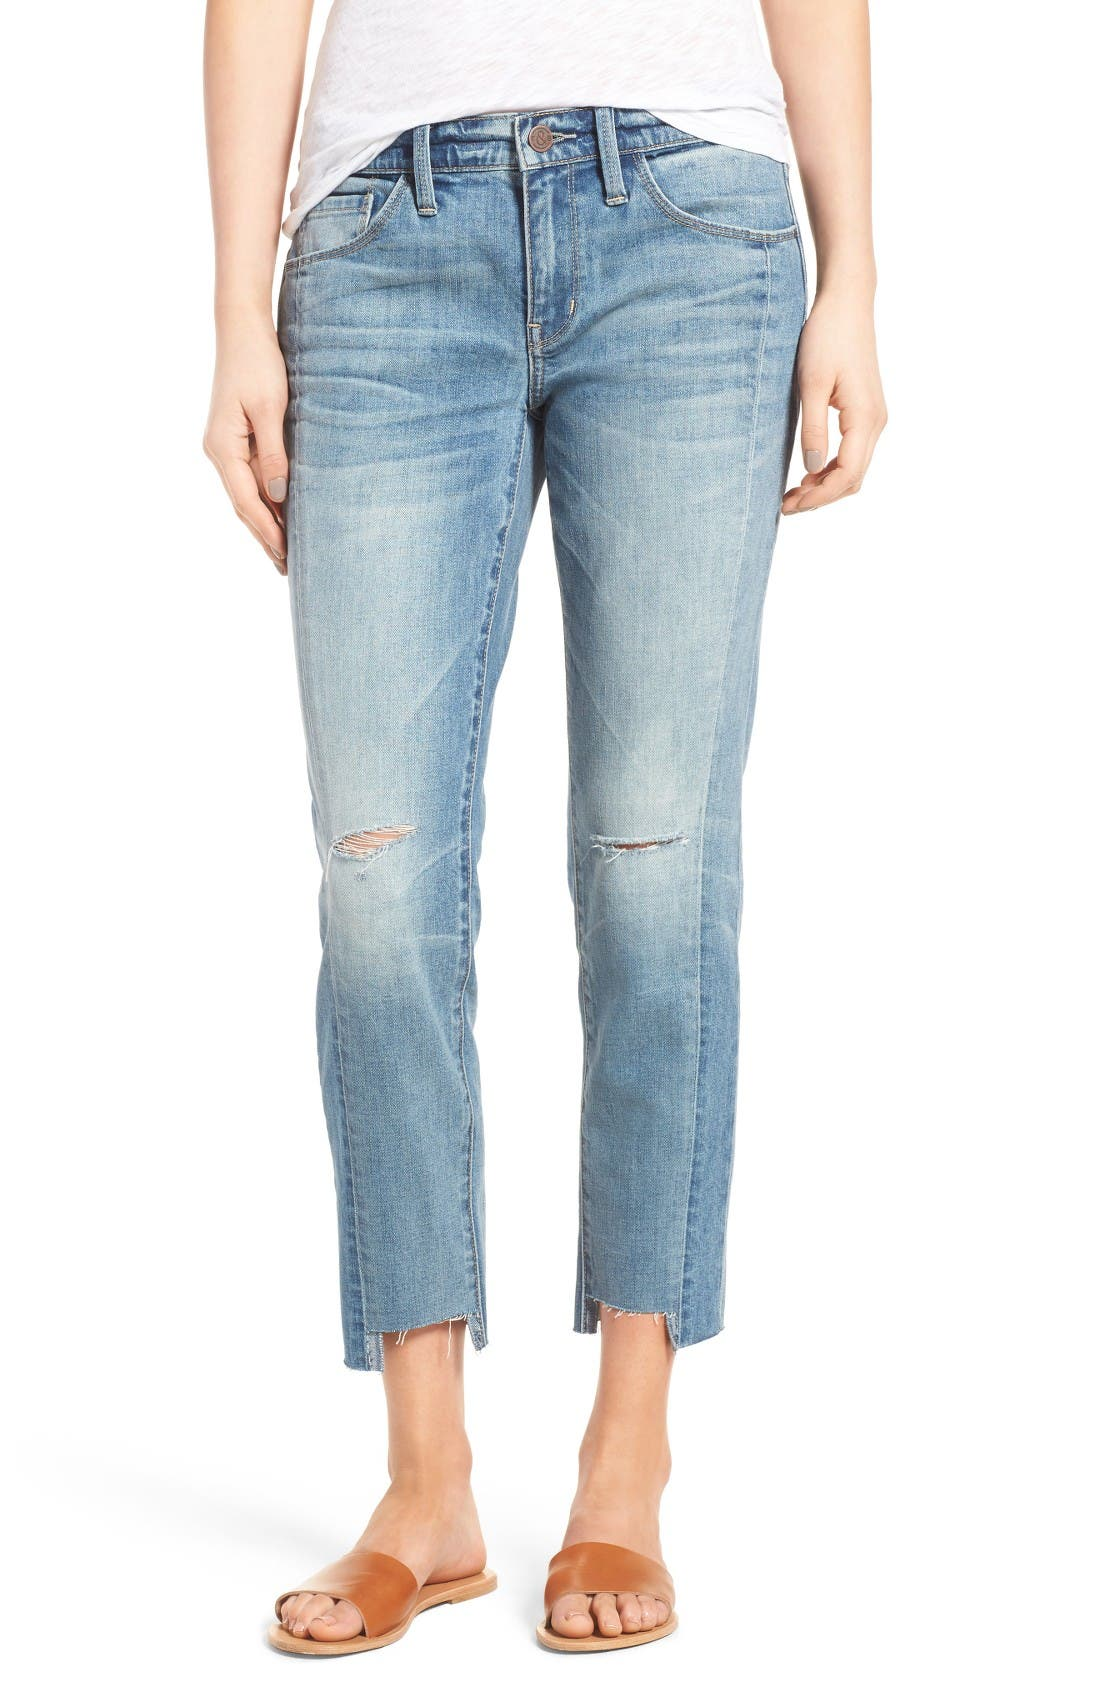 Alternate Image 1 Selected - Treasure & Bond Skinny Boyfriend Jeans (Gravel Medium Remade)